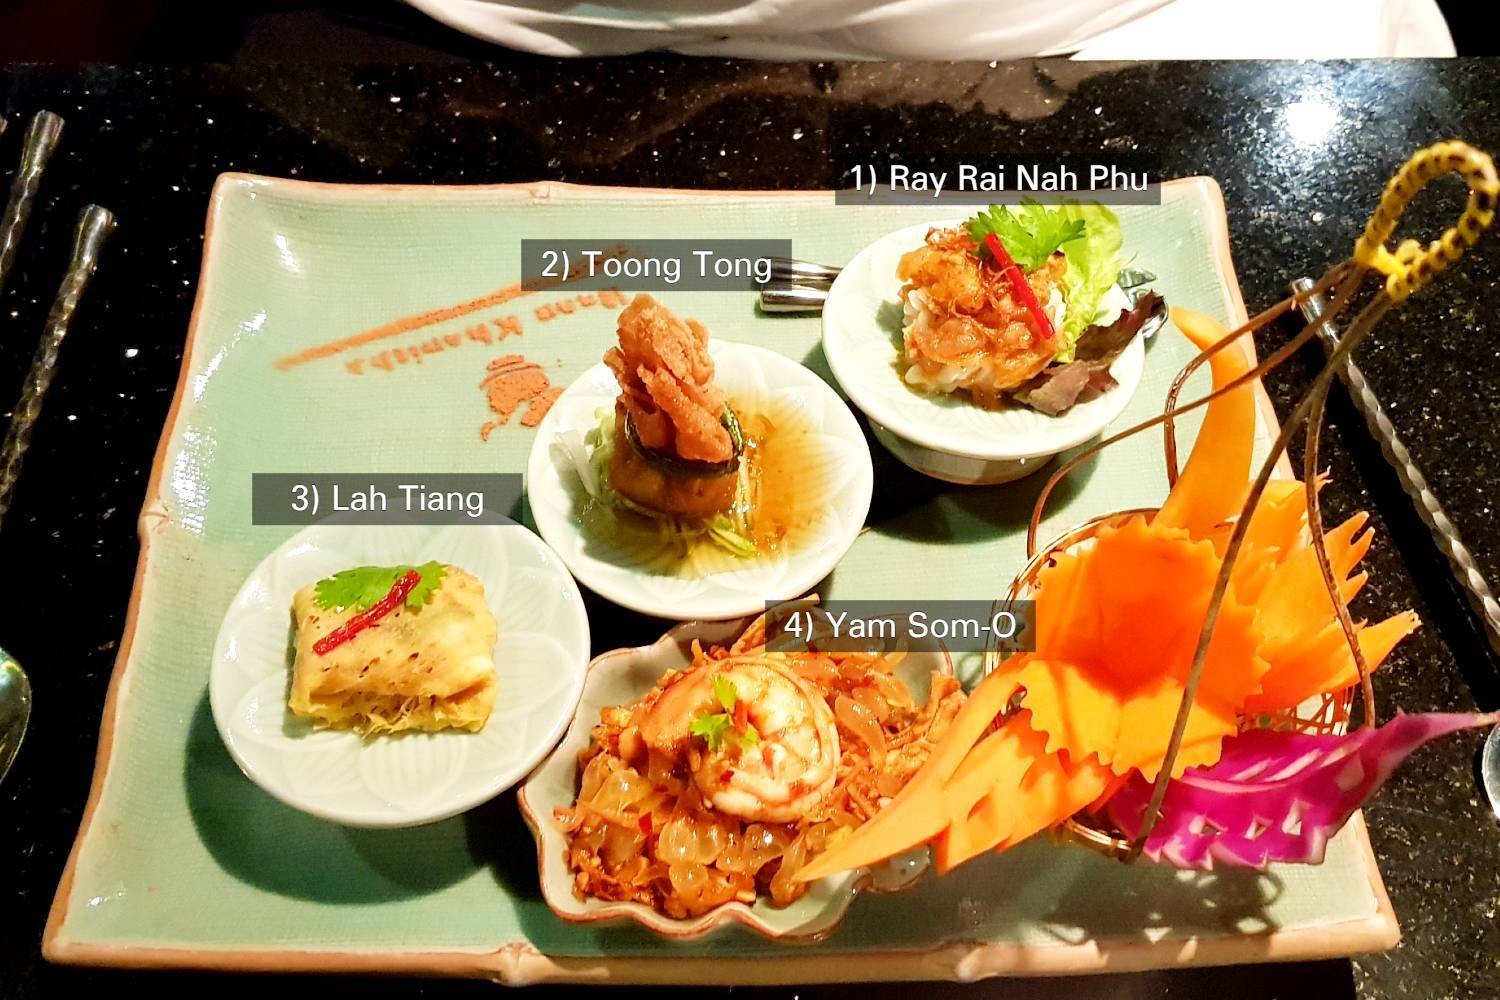 The four starters during the Baan Khanitha Cruise